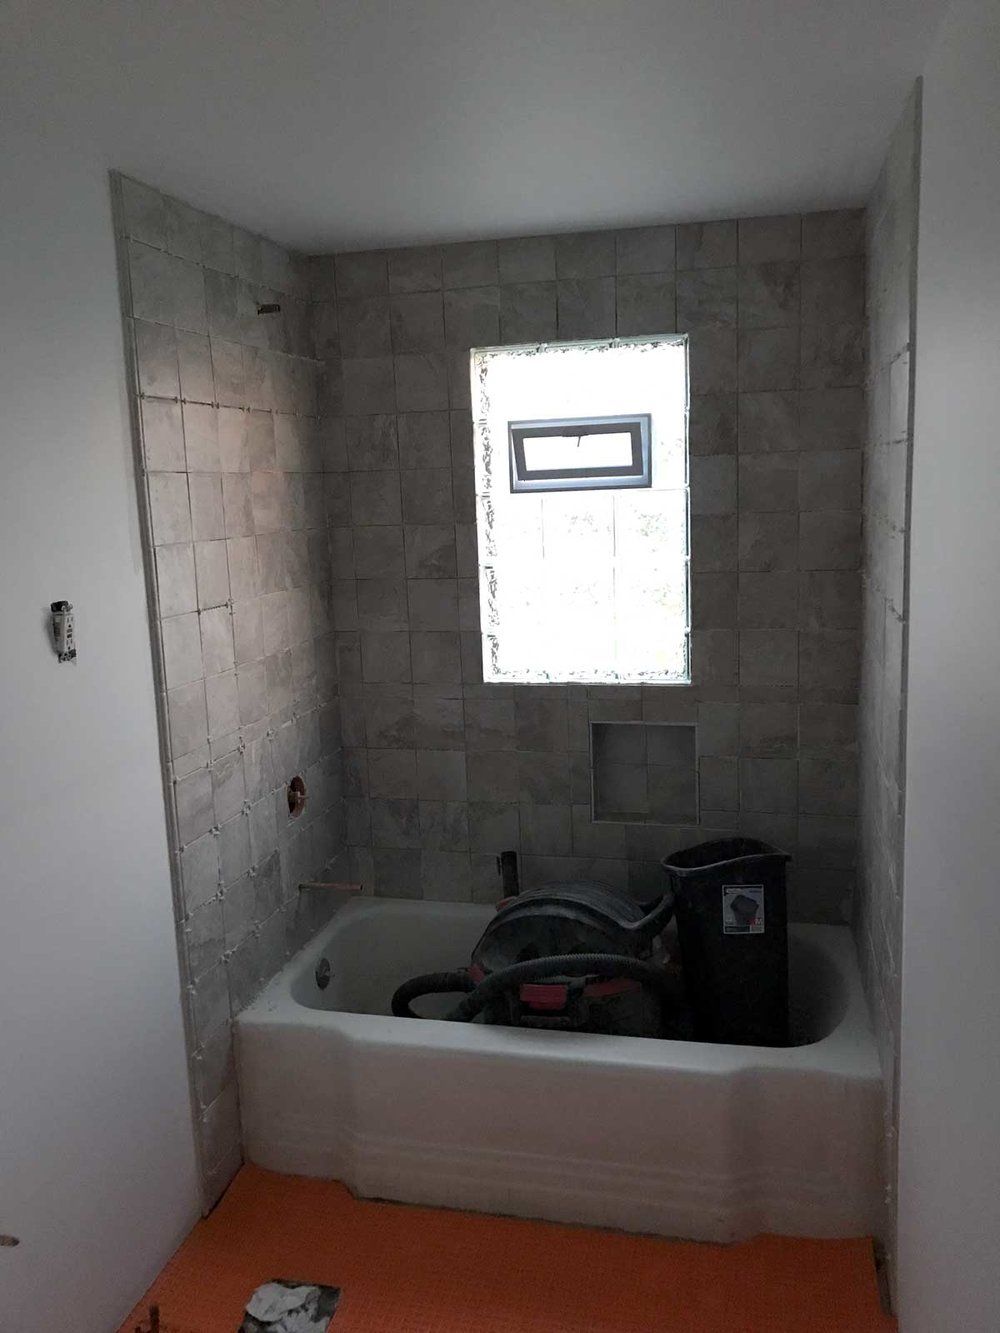 15-Day-Bathroom-Renovation-23.jpg